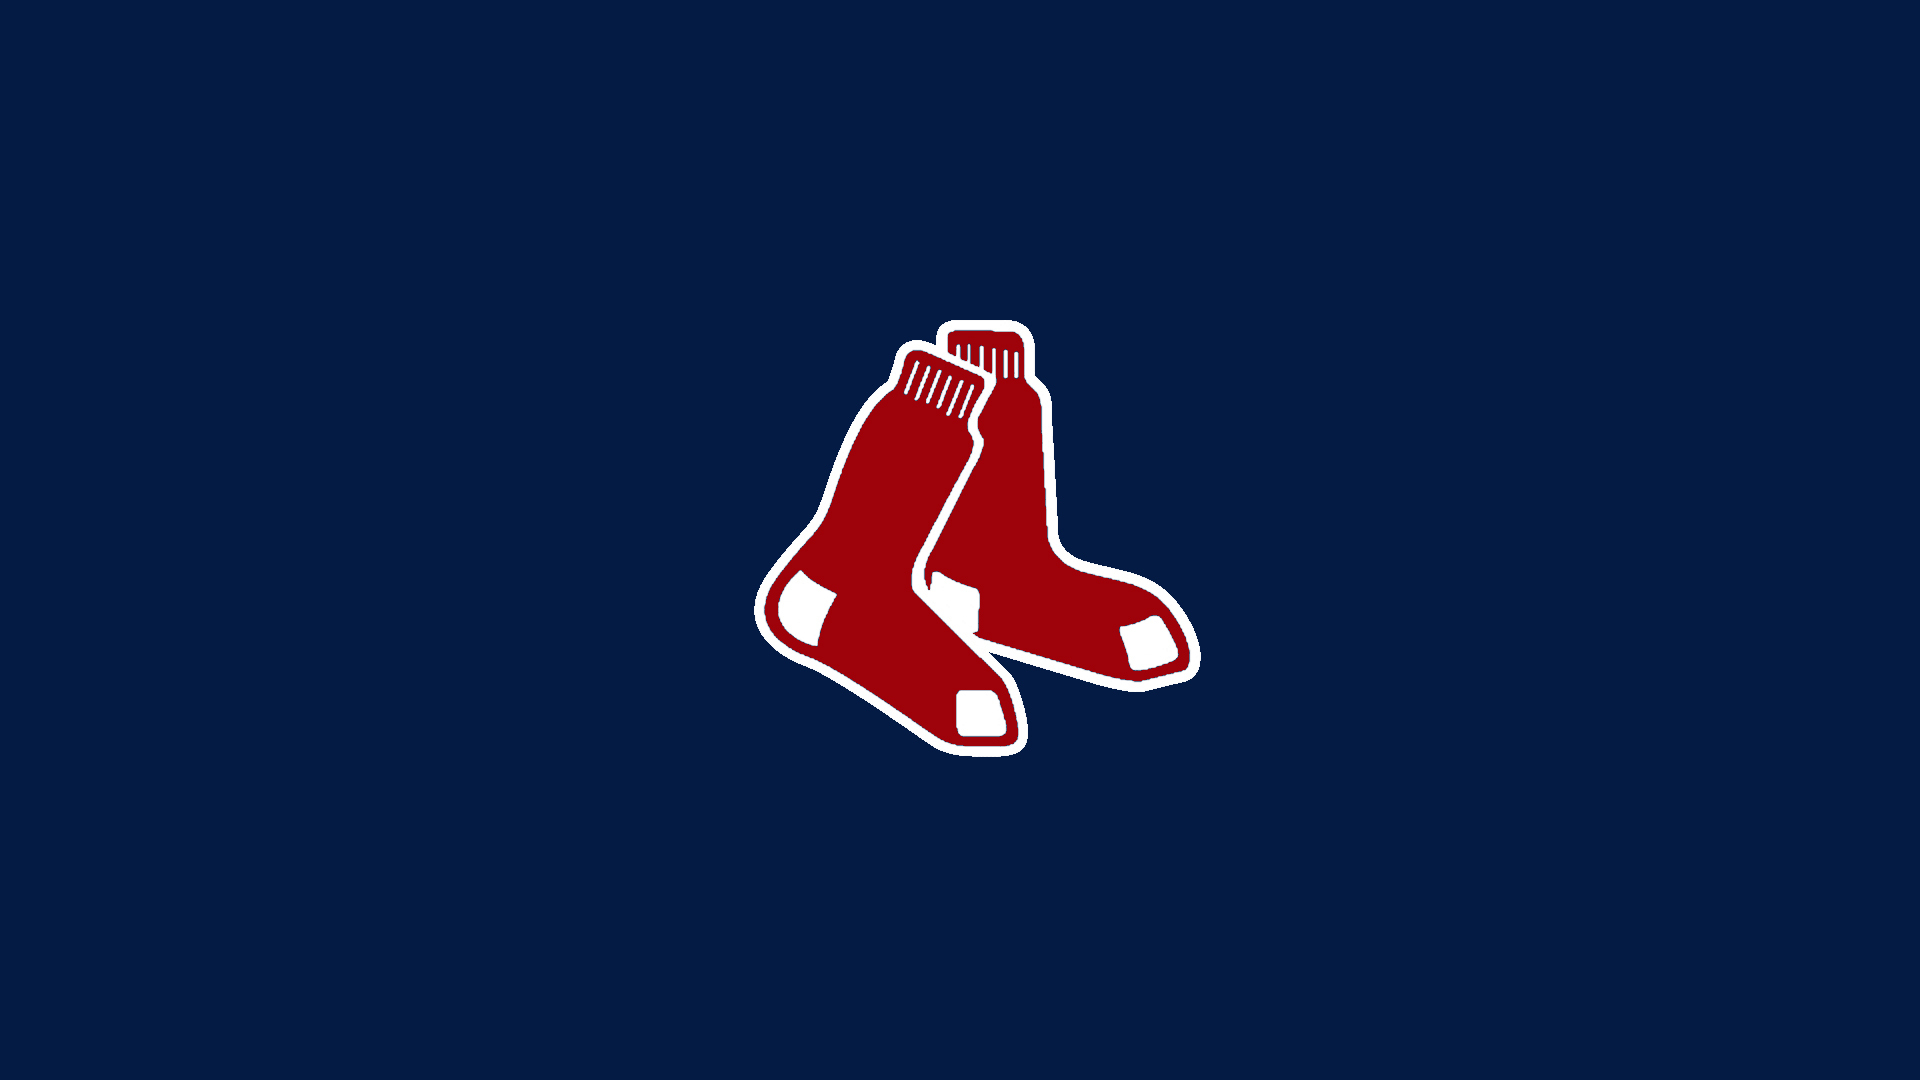 Boston Red Sox Wallpaper Hd HD Wallpapers 1920x1080